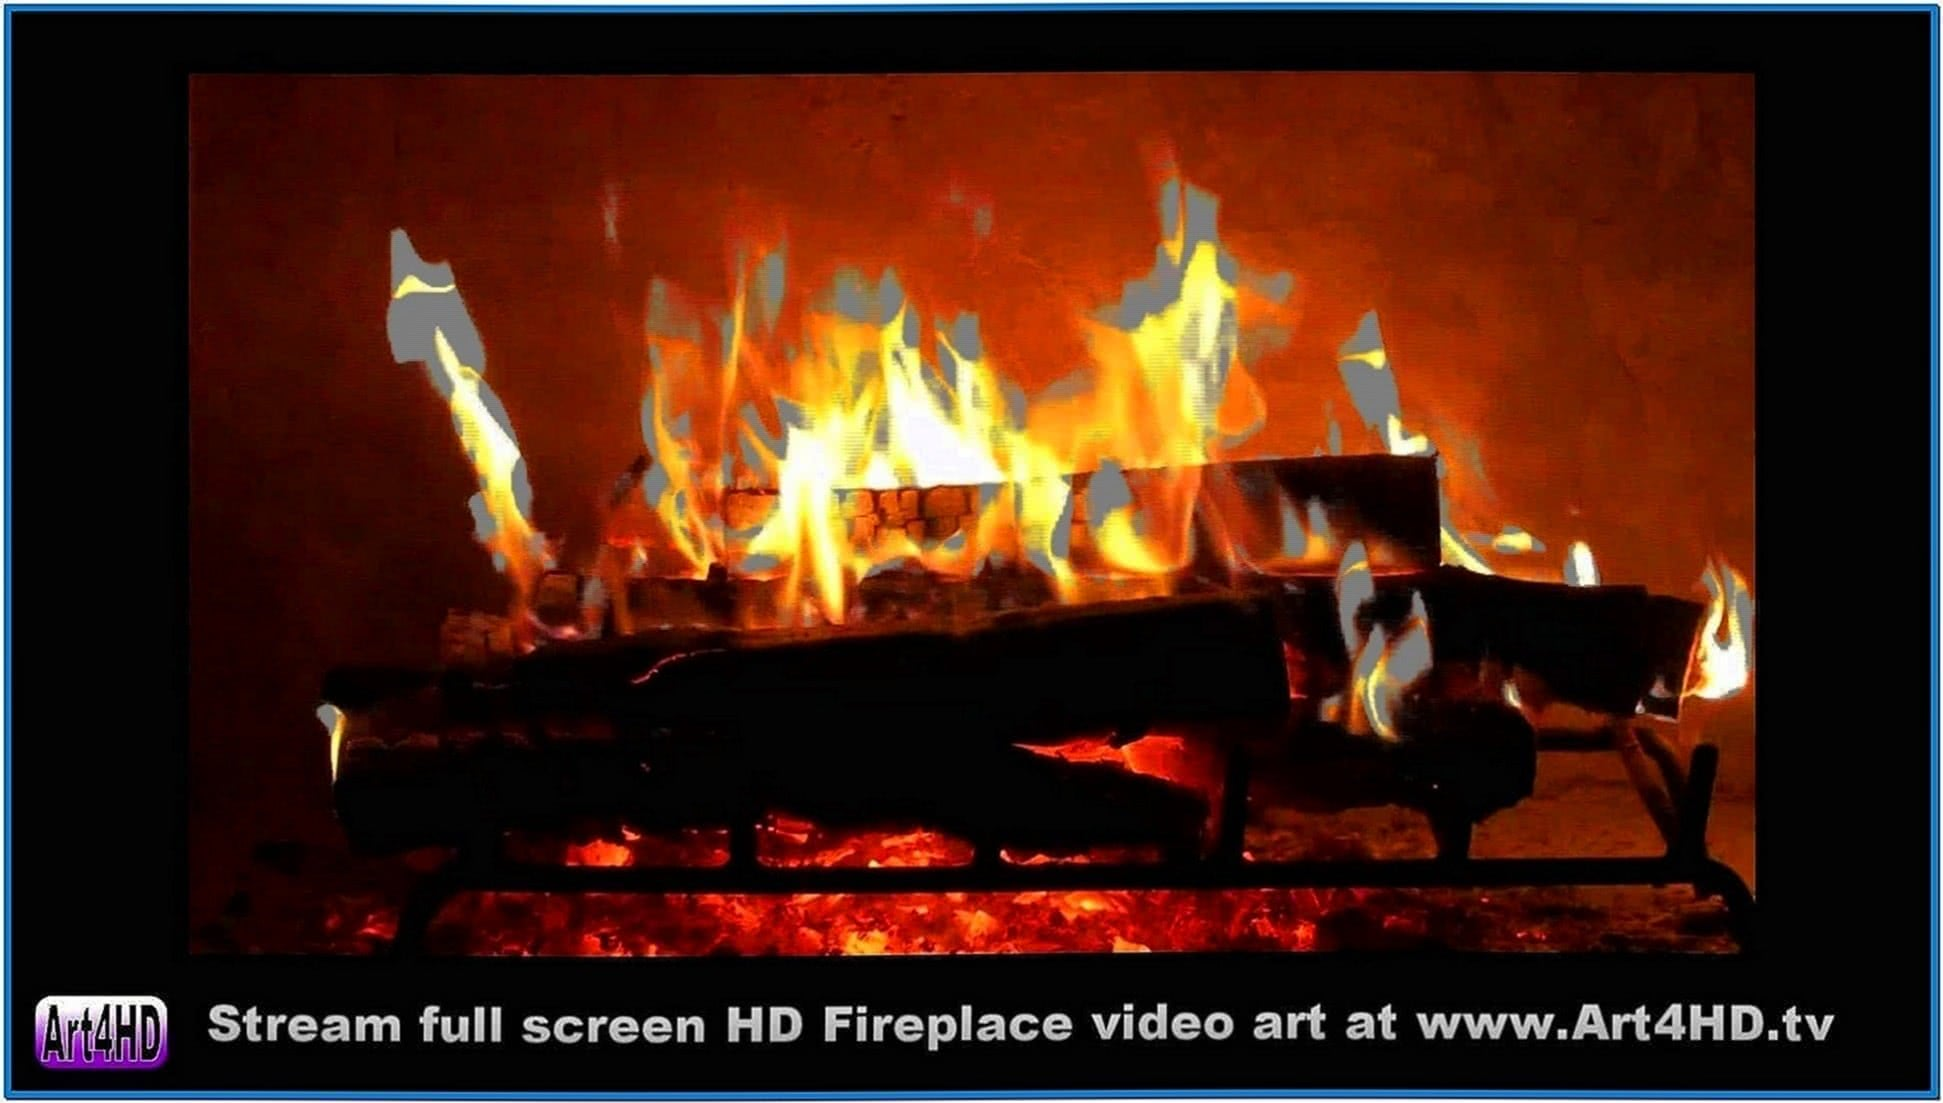 Fireplace Screensaver for Apple TV